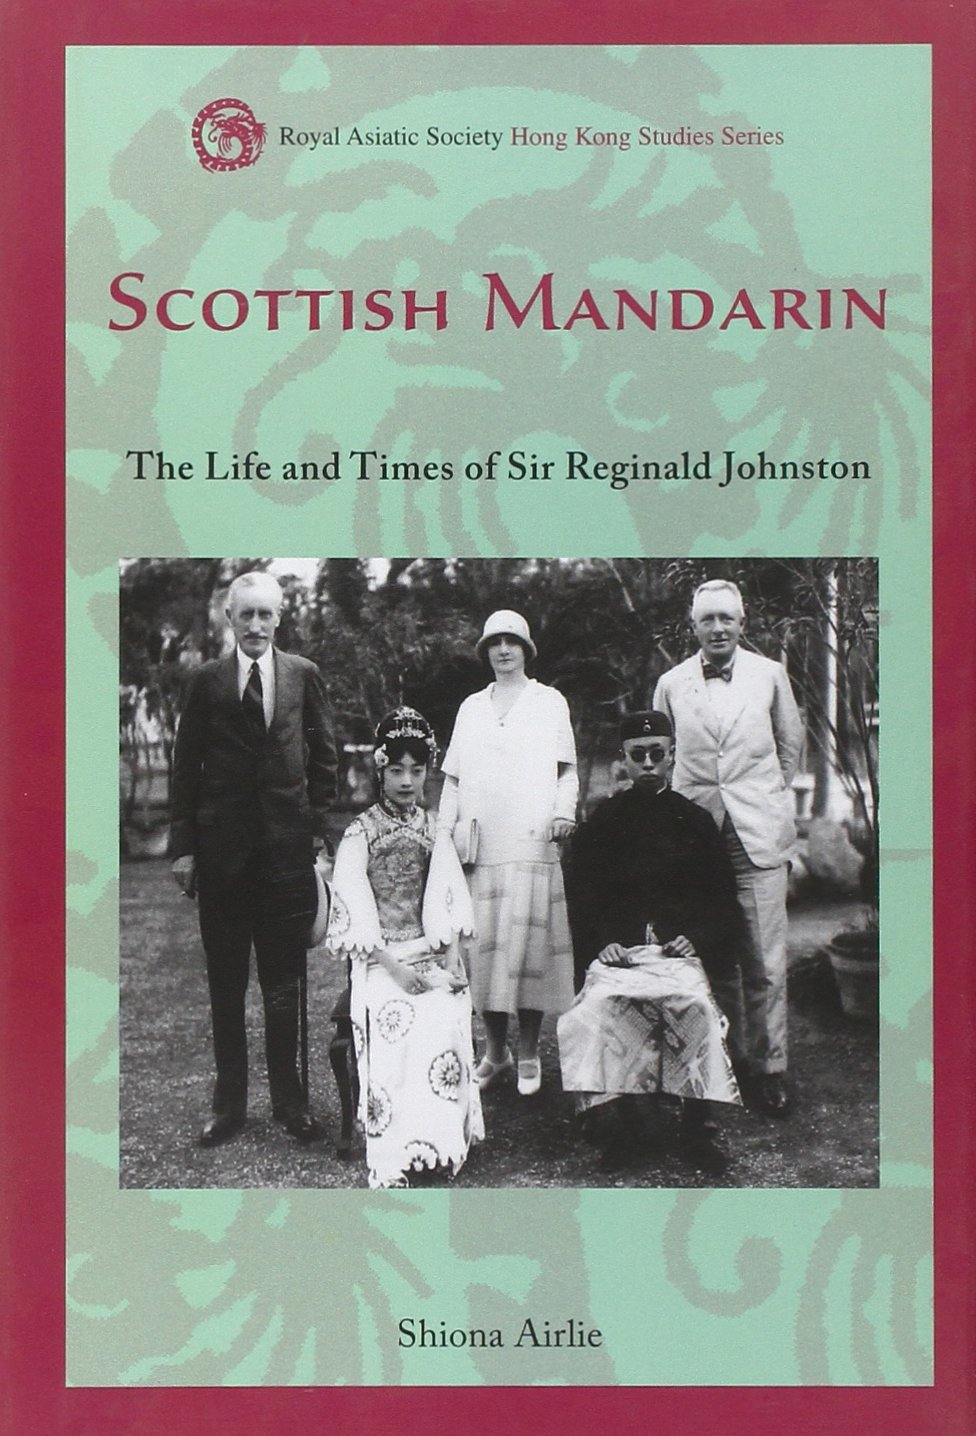 Scottish Mandarin: The Life and Times of Sir Reginald Johnston (Royal Asiatic Society Hong Kong Studies Series) pdf epub